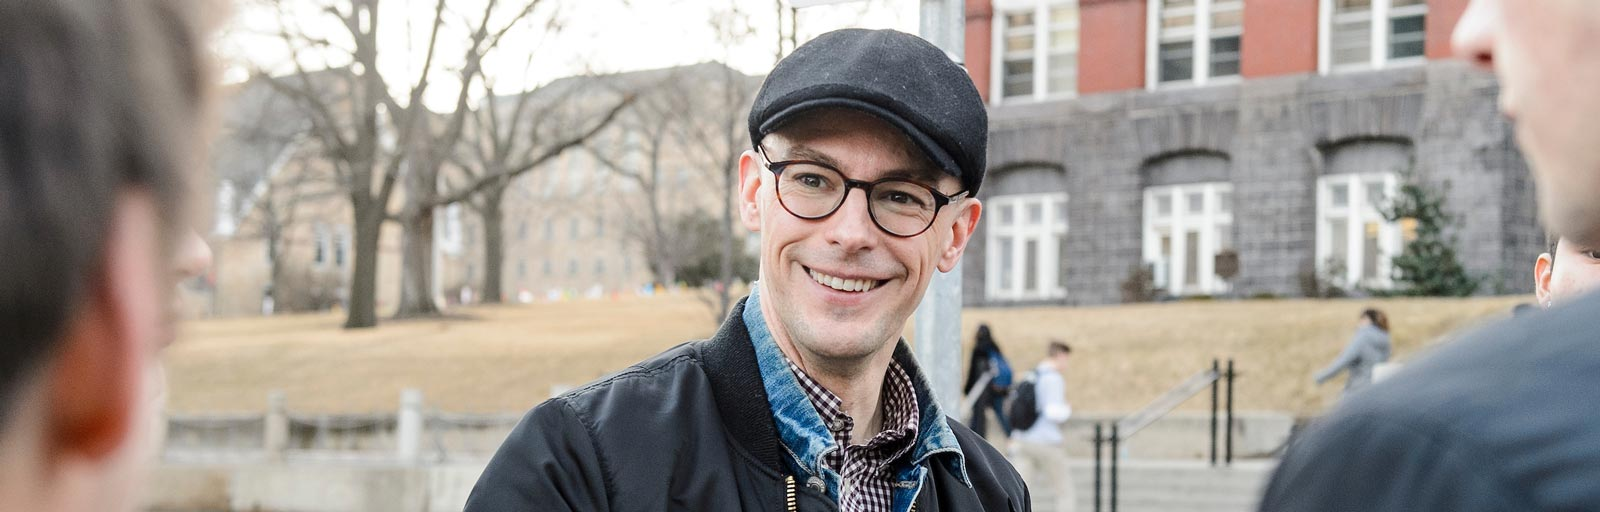 Jerome Camal, assistant professor of anthropology at the University of Wisconsin-Madison, teaches during his Anthropology 490: Anthropology of Sound course.